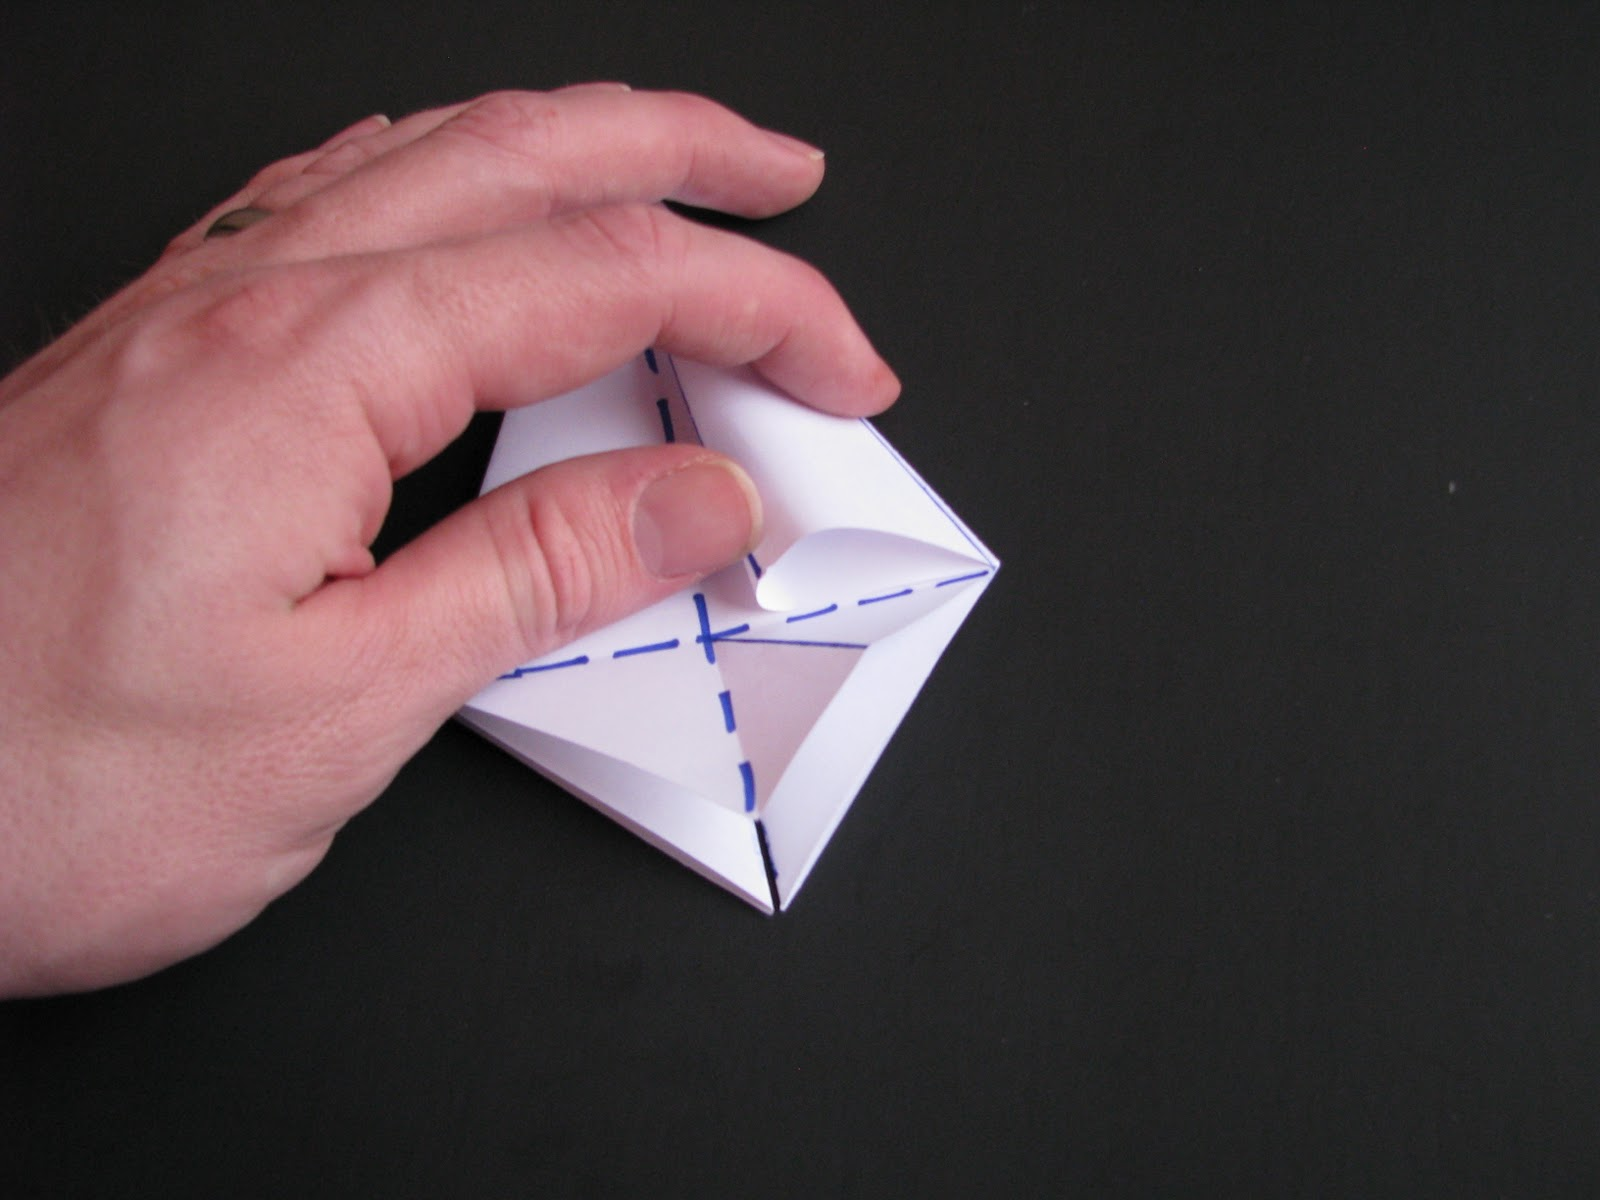 Origami Tutorial : 5 Pointed Star Box | Origami Useful Items Easy ... | 1200x1600